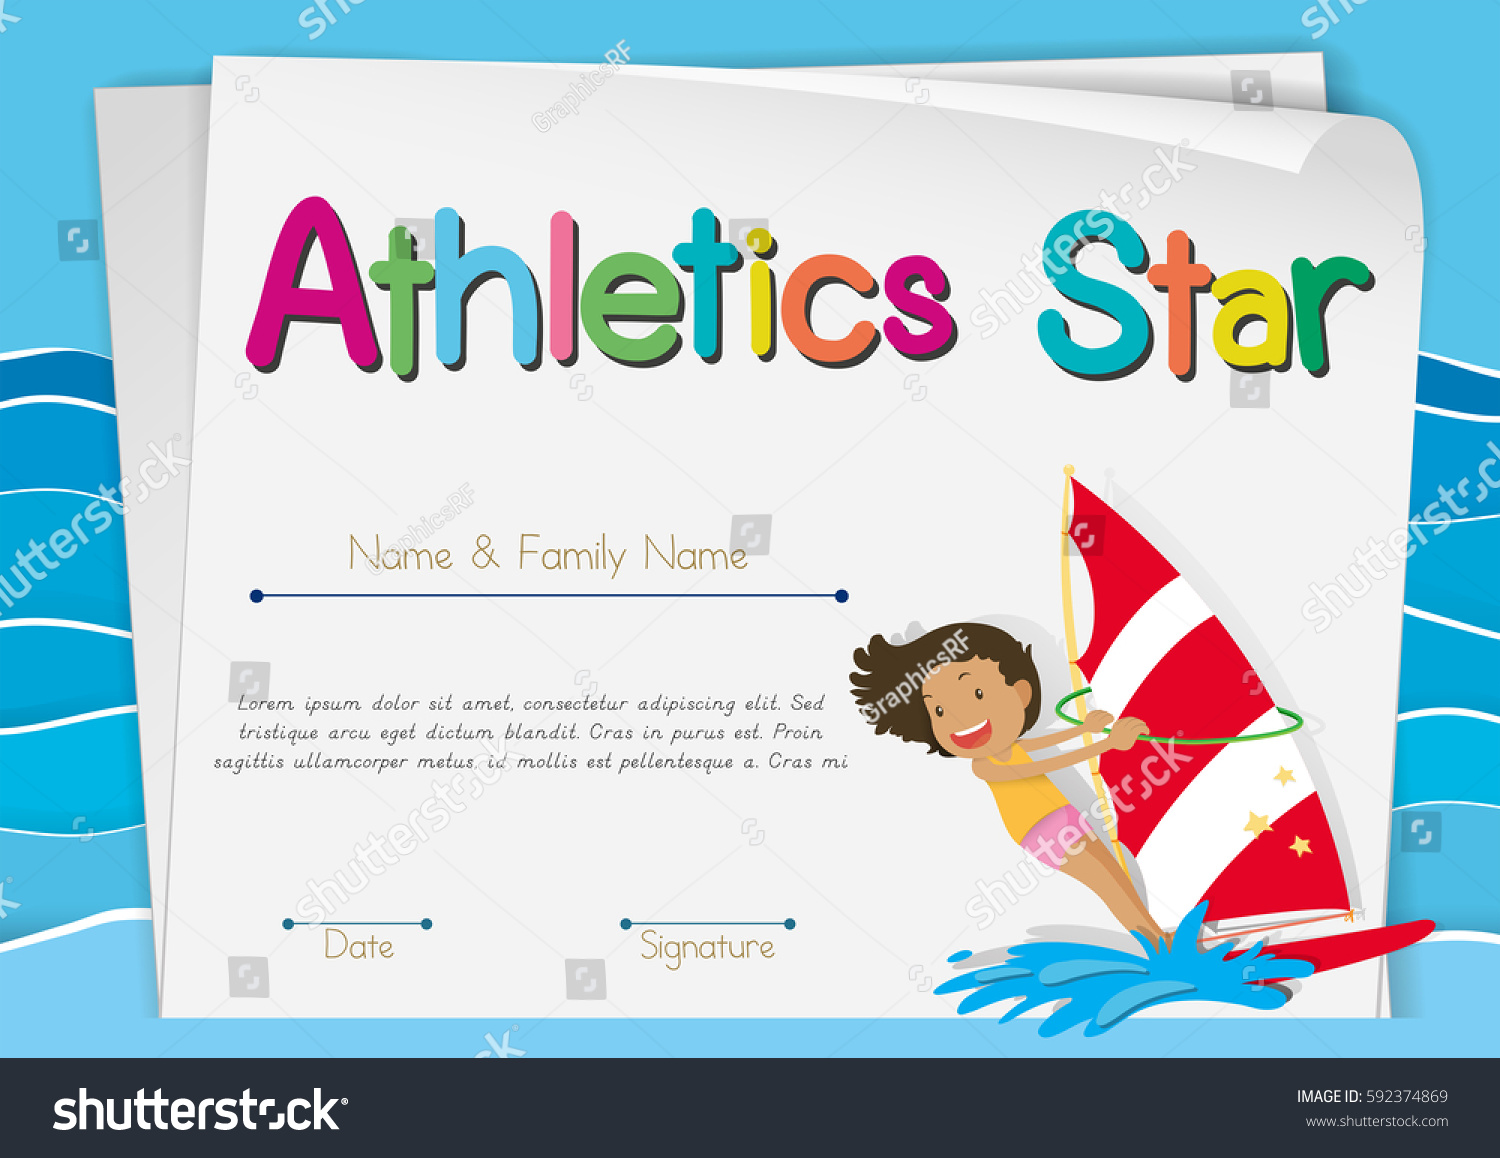 Certificate Template For Athletics Star Illustration